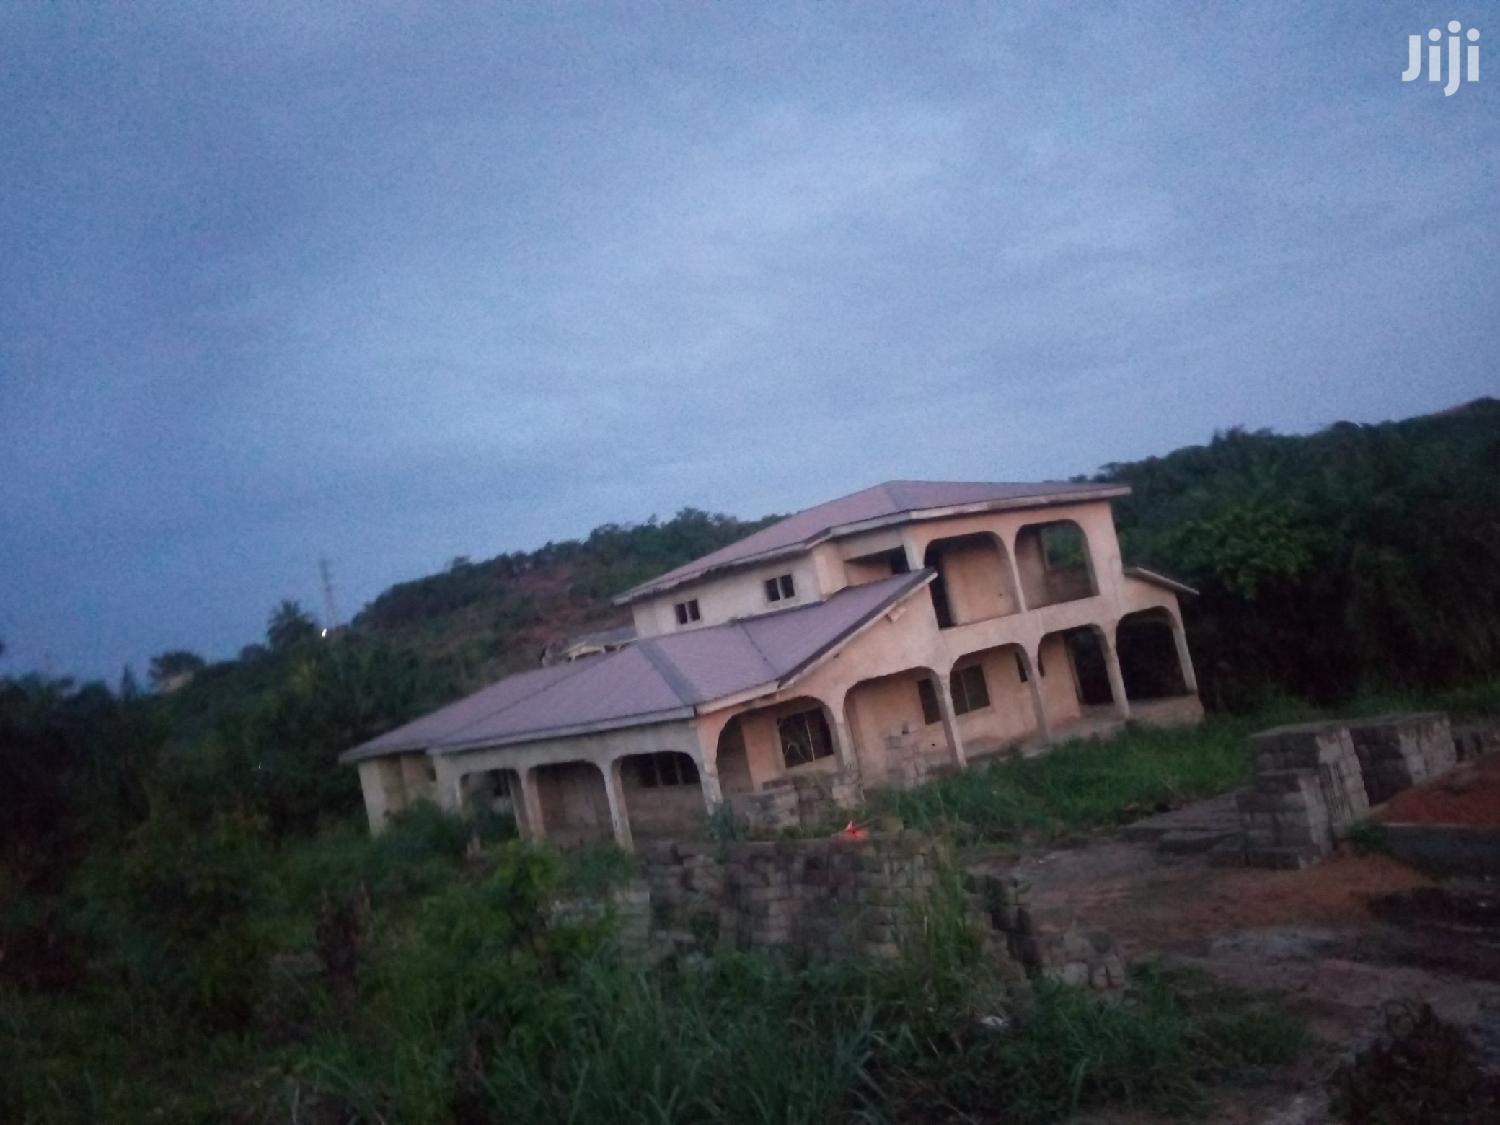 Six Bedroom Uncompleted House For Sale | Houses & Apartments For Sale for sale in Cape Coast Metropolitan, Central Region, Ghana